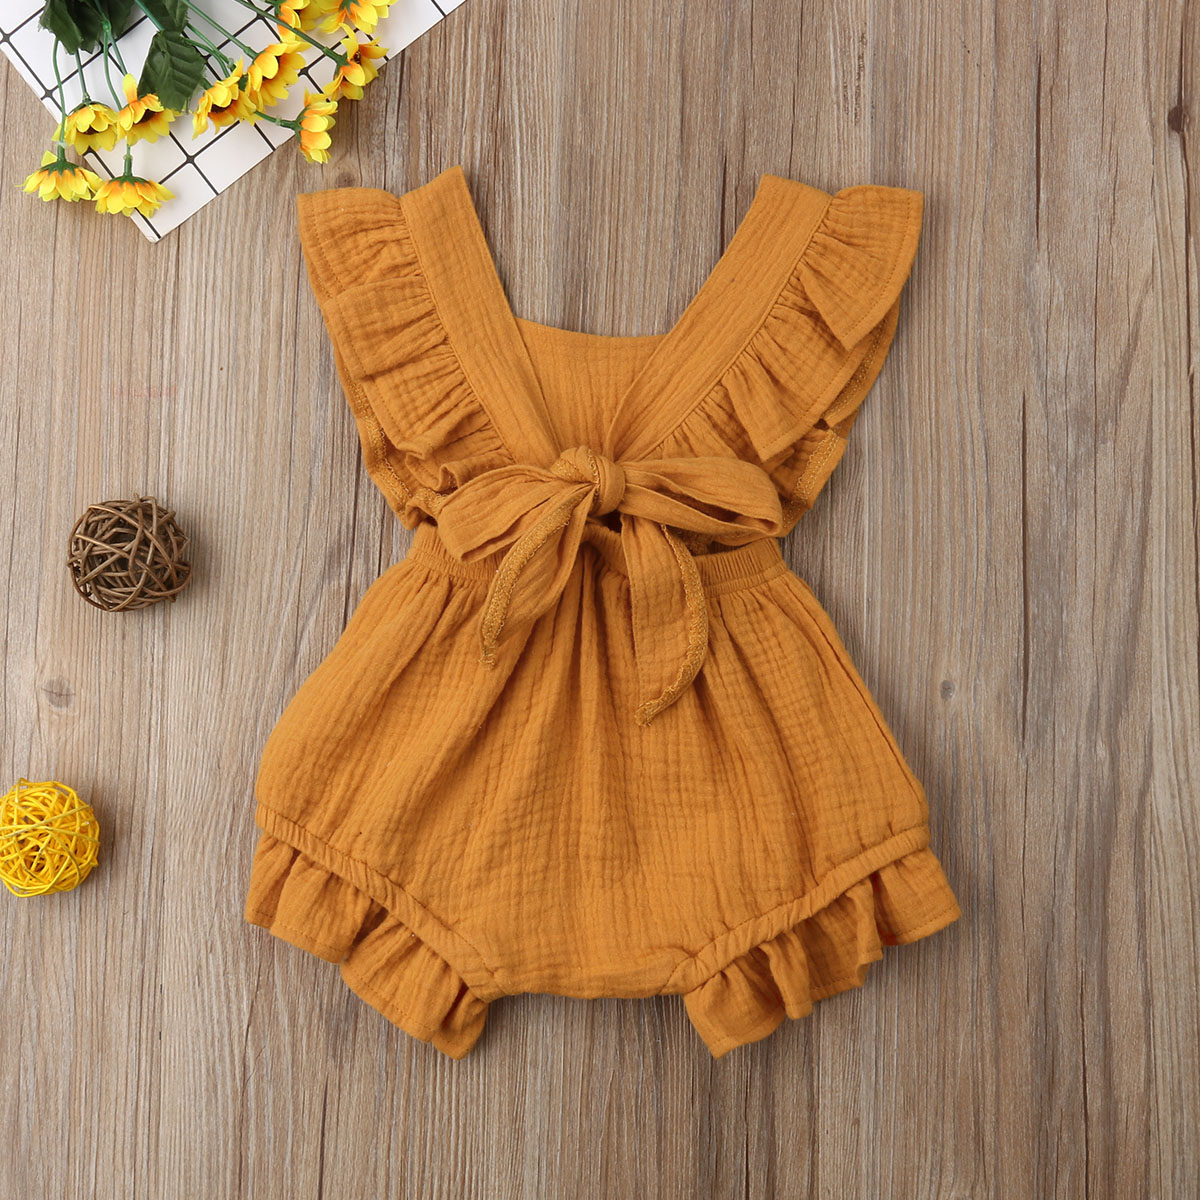 2019 Brand New Infant Newborn Baby Girls Ruffle Rompers One Pieces Clothes Baby Girl Summer Sleeveless 2019 Brand New Infant Newborn Baby Girls Ruffle Rompers One-Pieces Clothes Baby Girl Summer Sleeveless Romper Jumpsuit Sunsuit